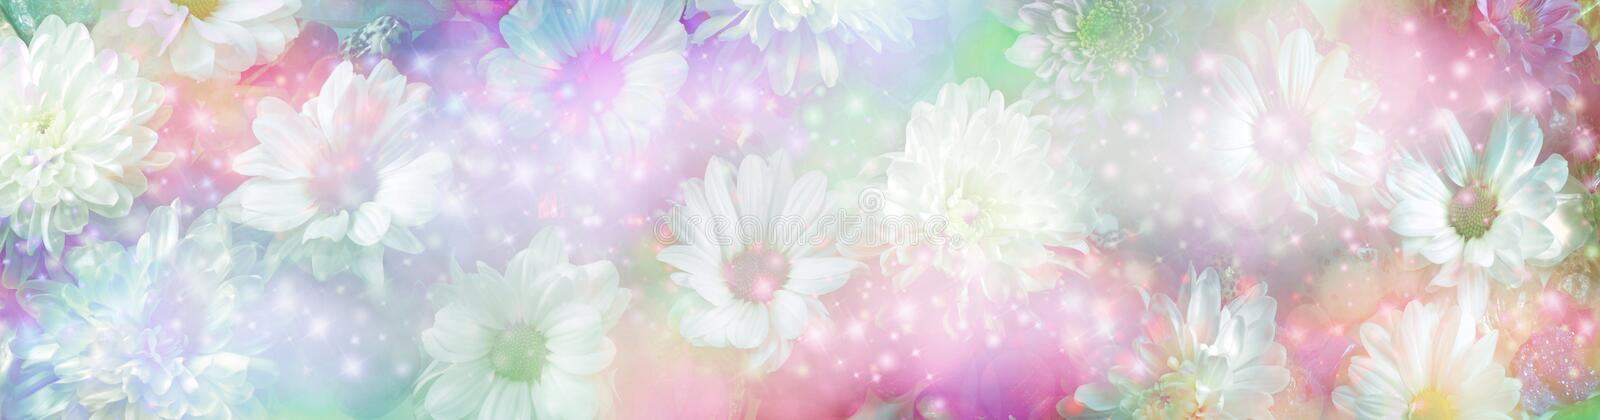 Ethereal daisies and gemstones background banner stock photos